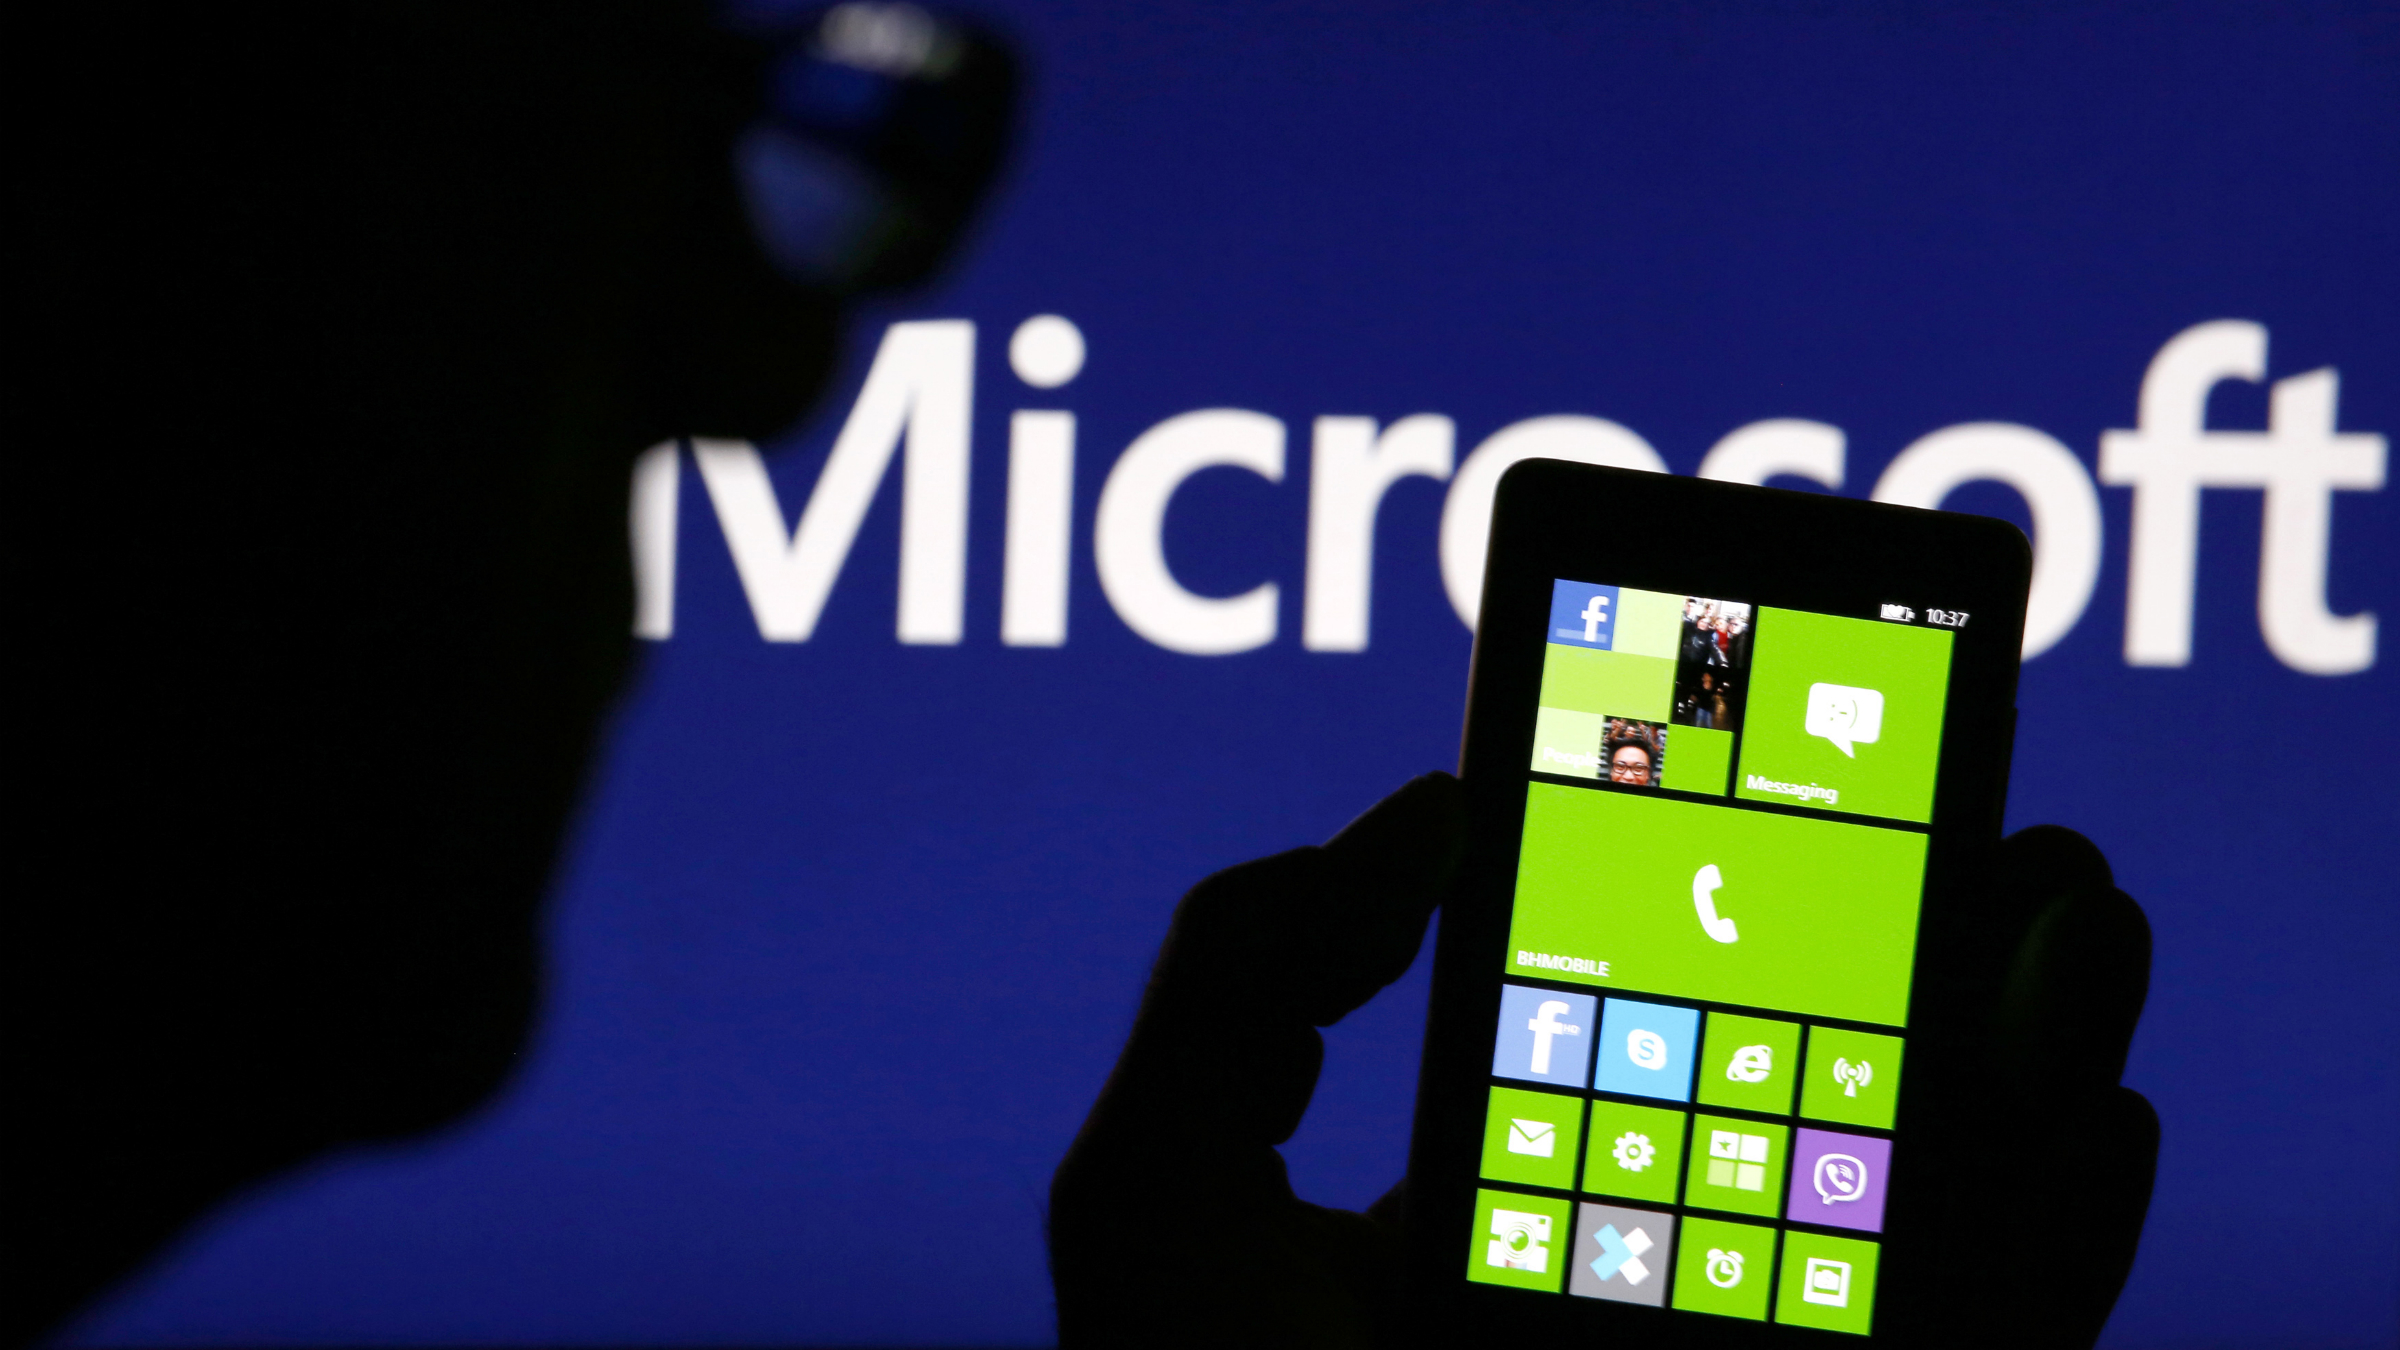 Investors weren't overly impressed my Microsoft's plan to boost its dividend and buy back $40 billion in shares.